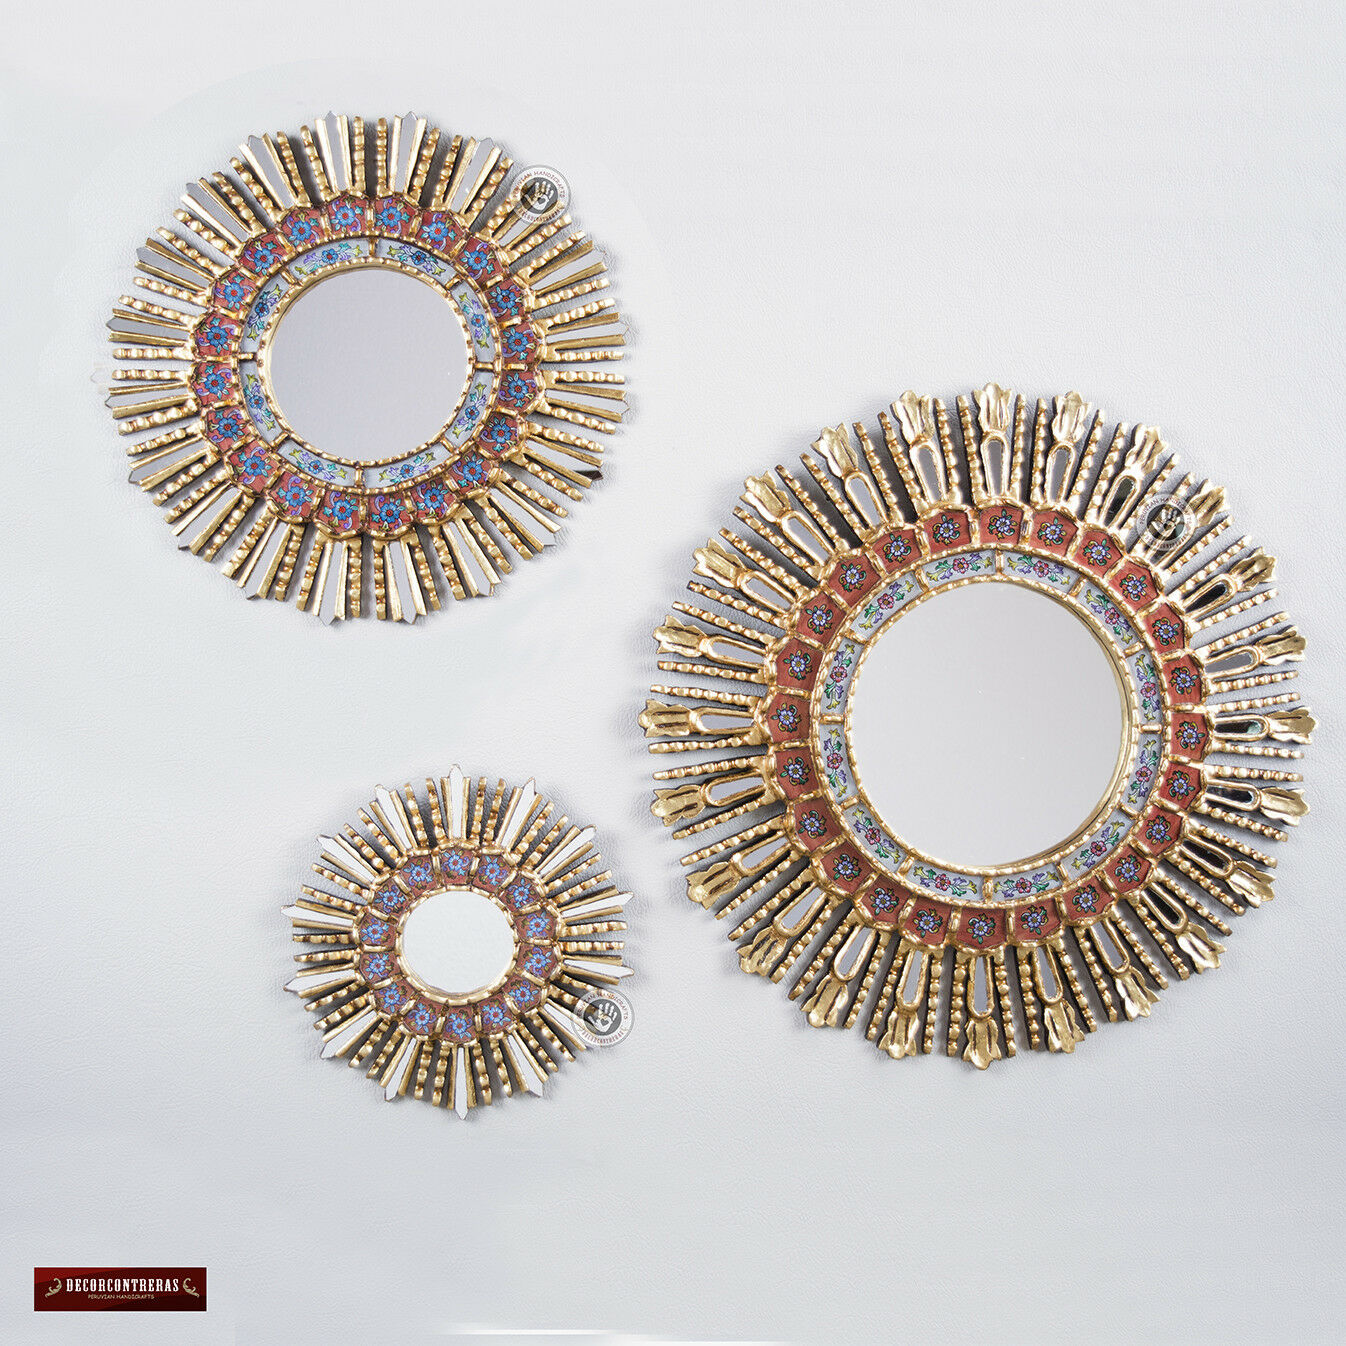 Sunburst rot Wall Mirrors set (3 Pieces) - Peruvian Round Mirror for wall decor